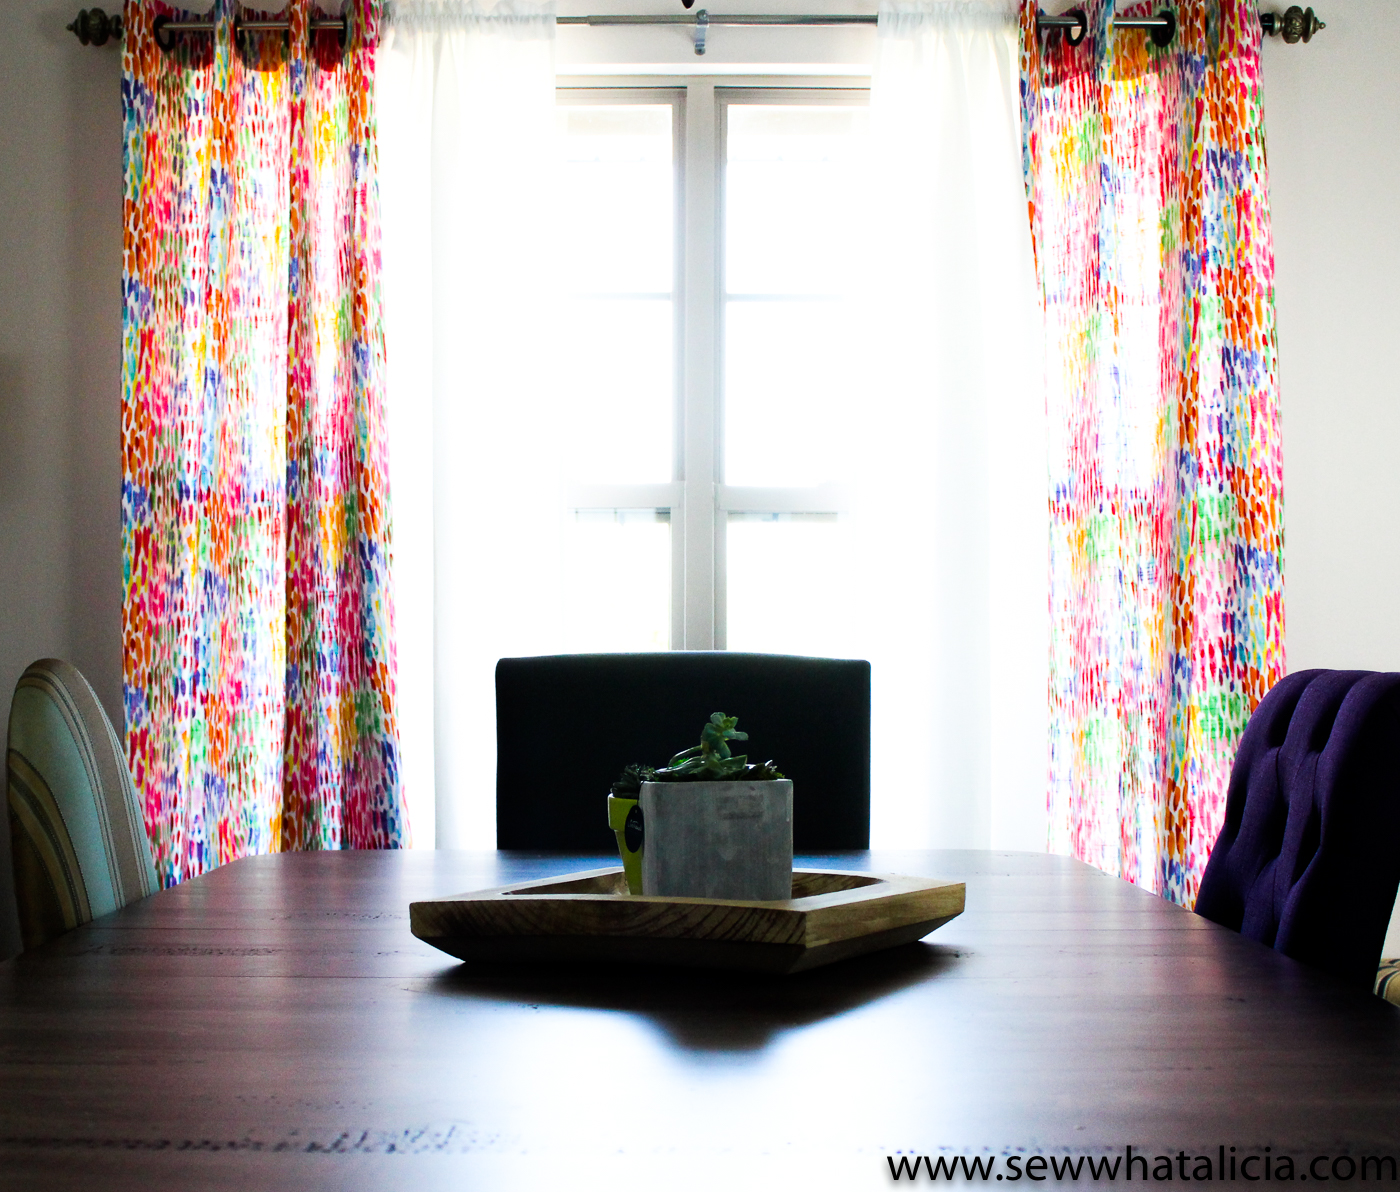 How To Make Curtains With Grommets